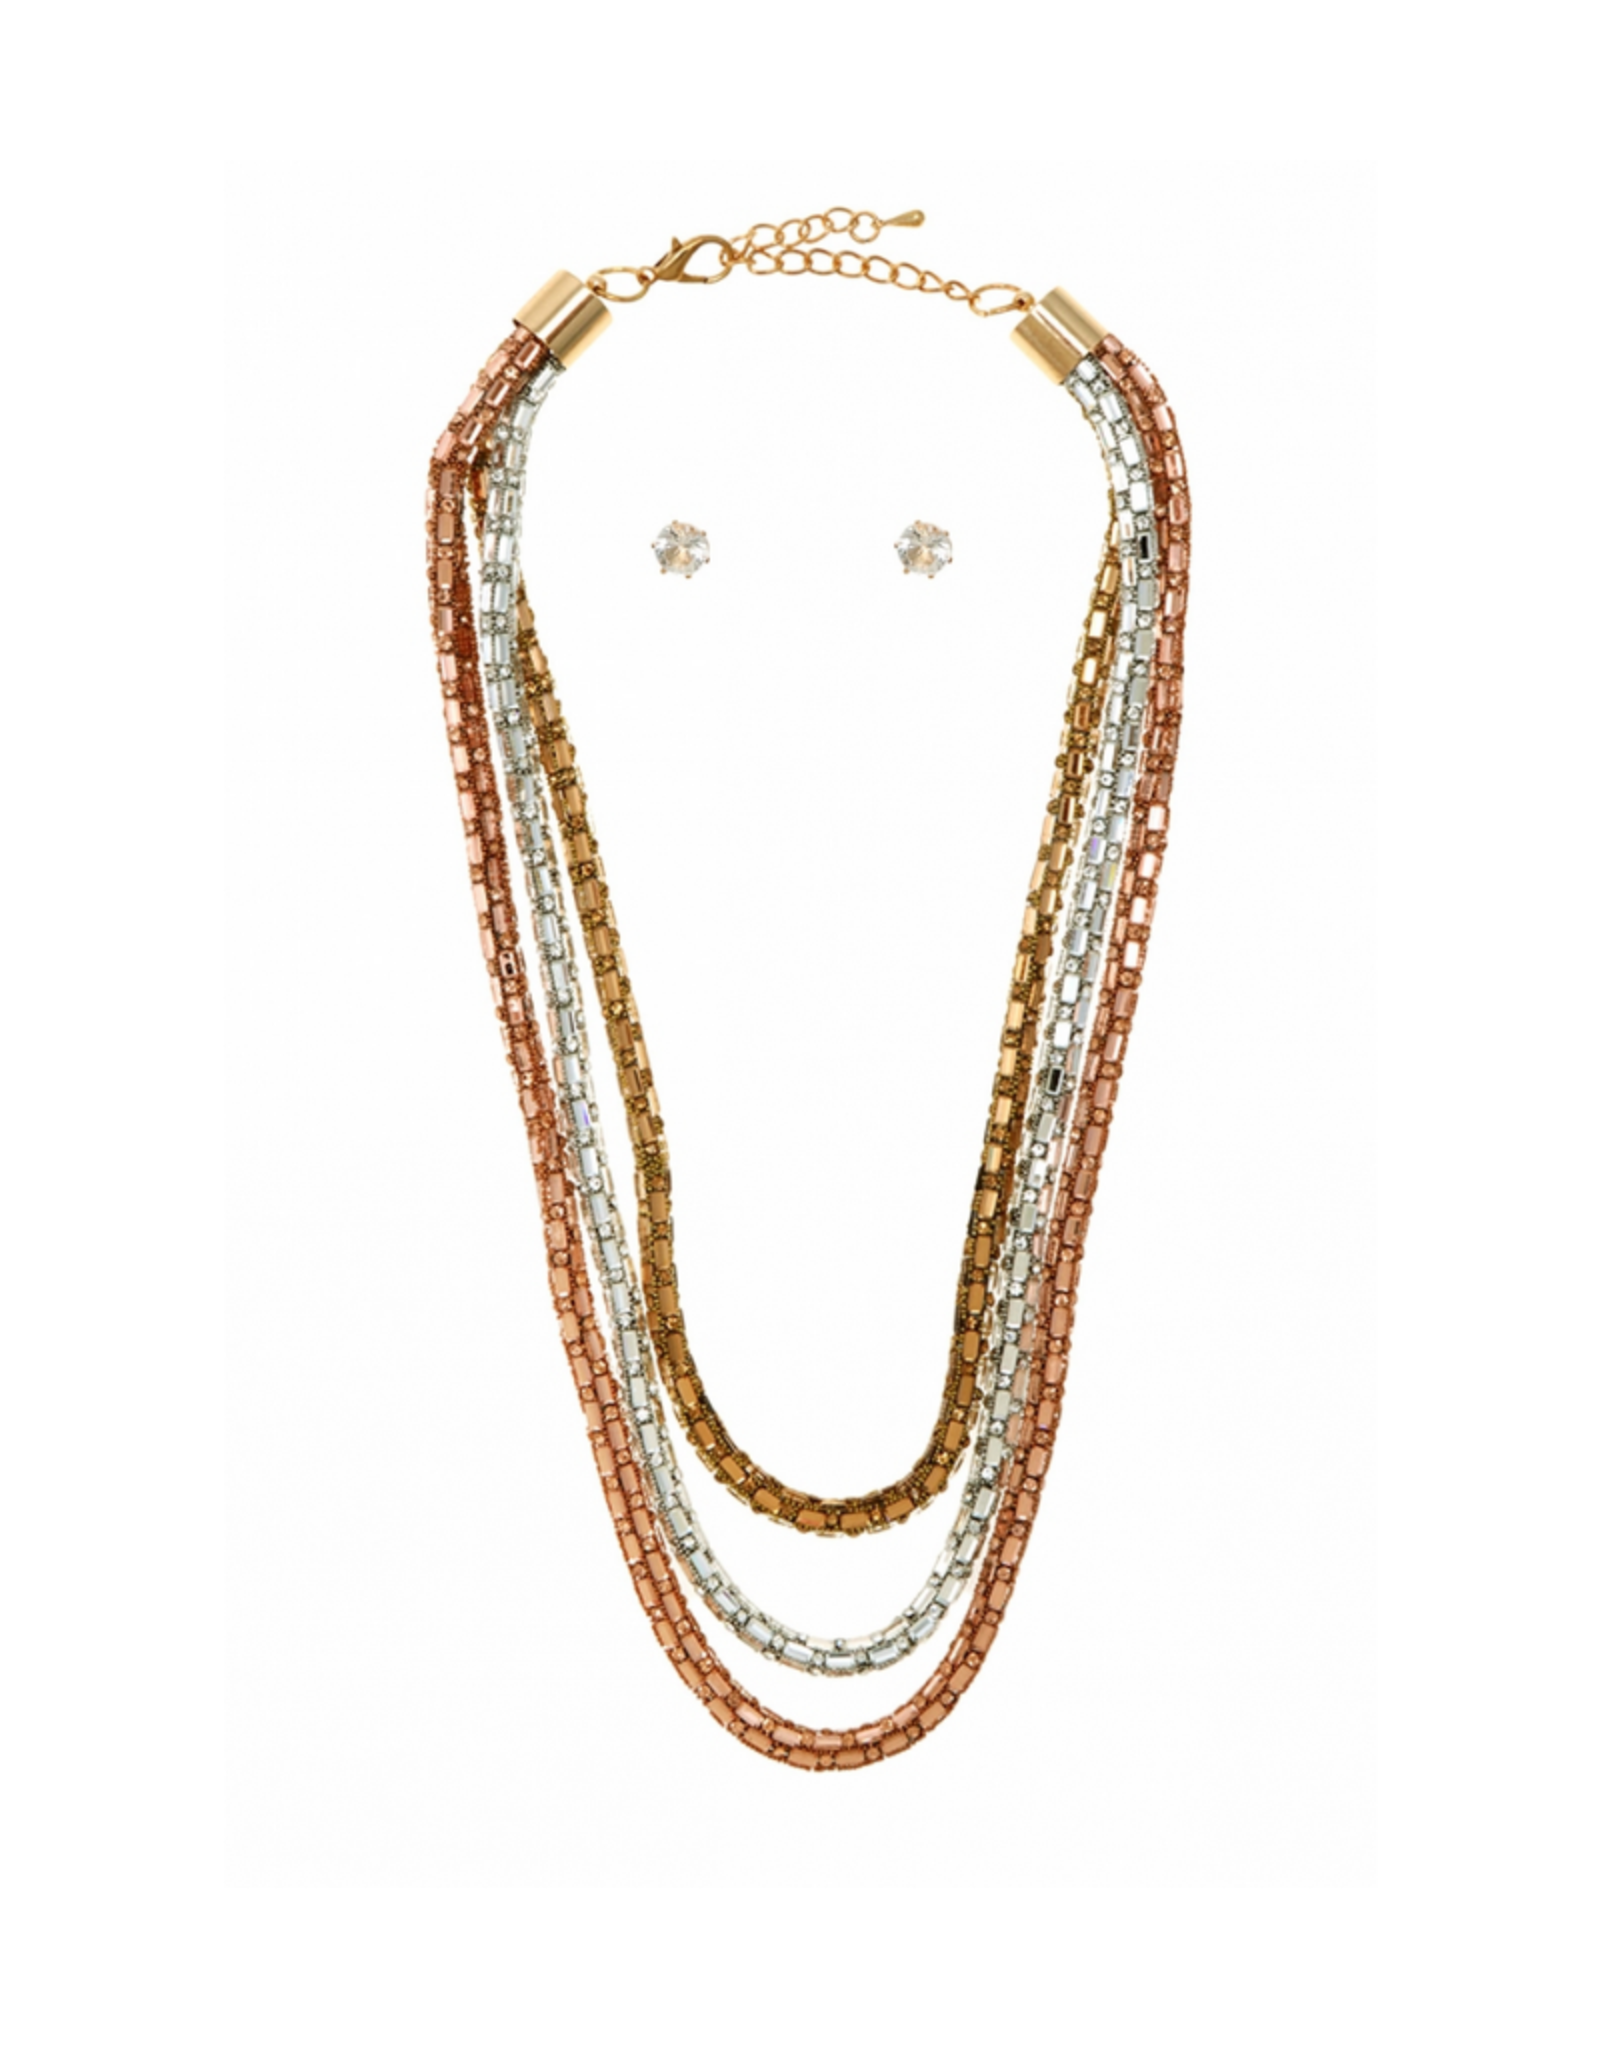 NECKLACE SET-LAYERED CHAIN 3 STRAND